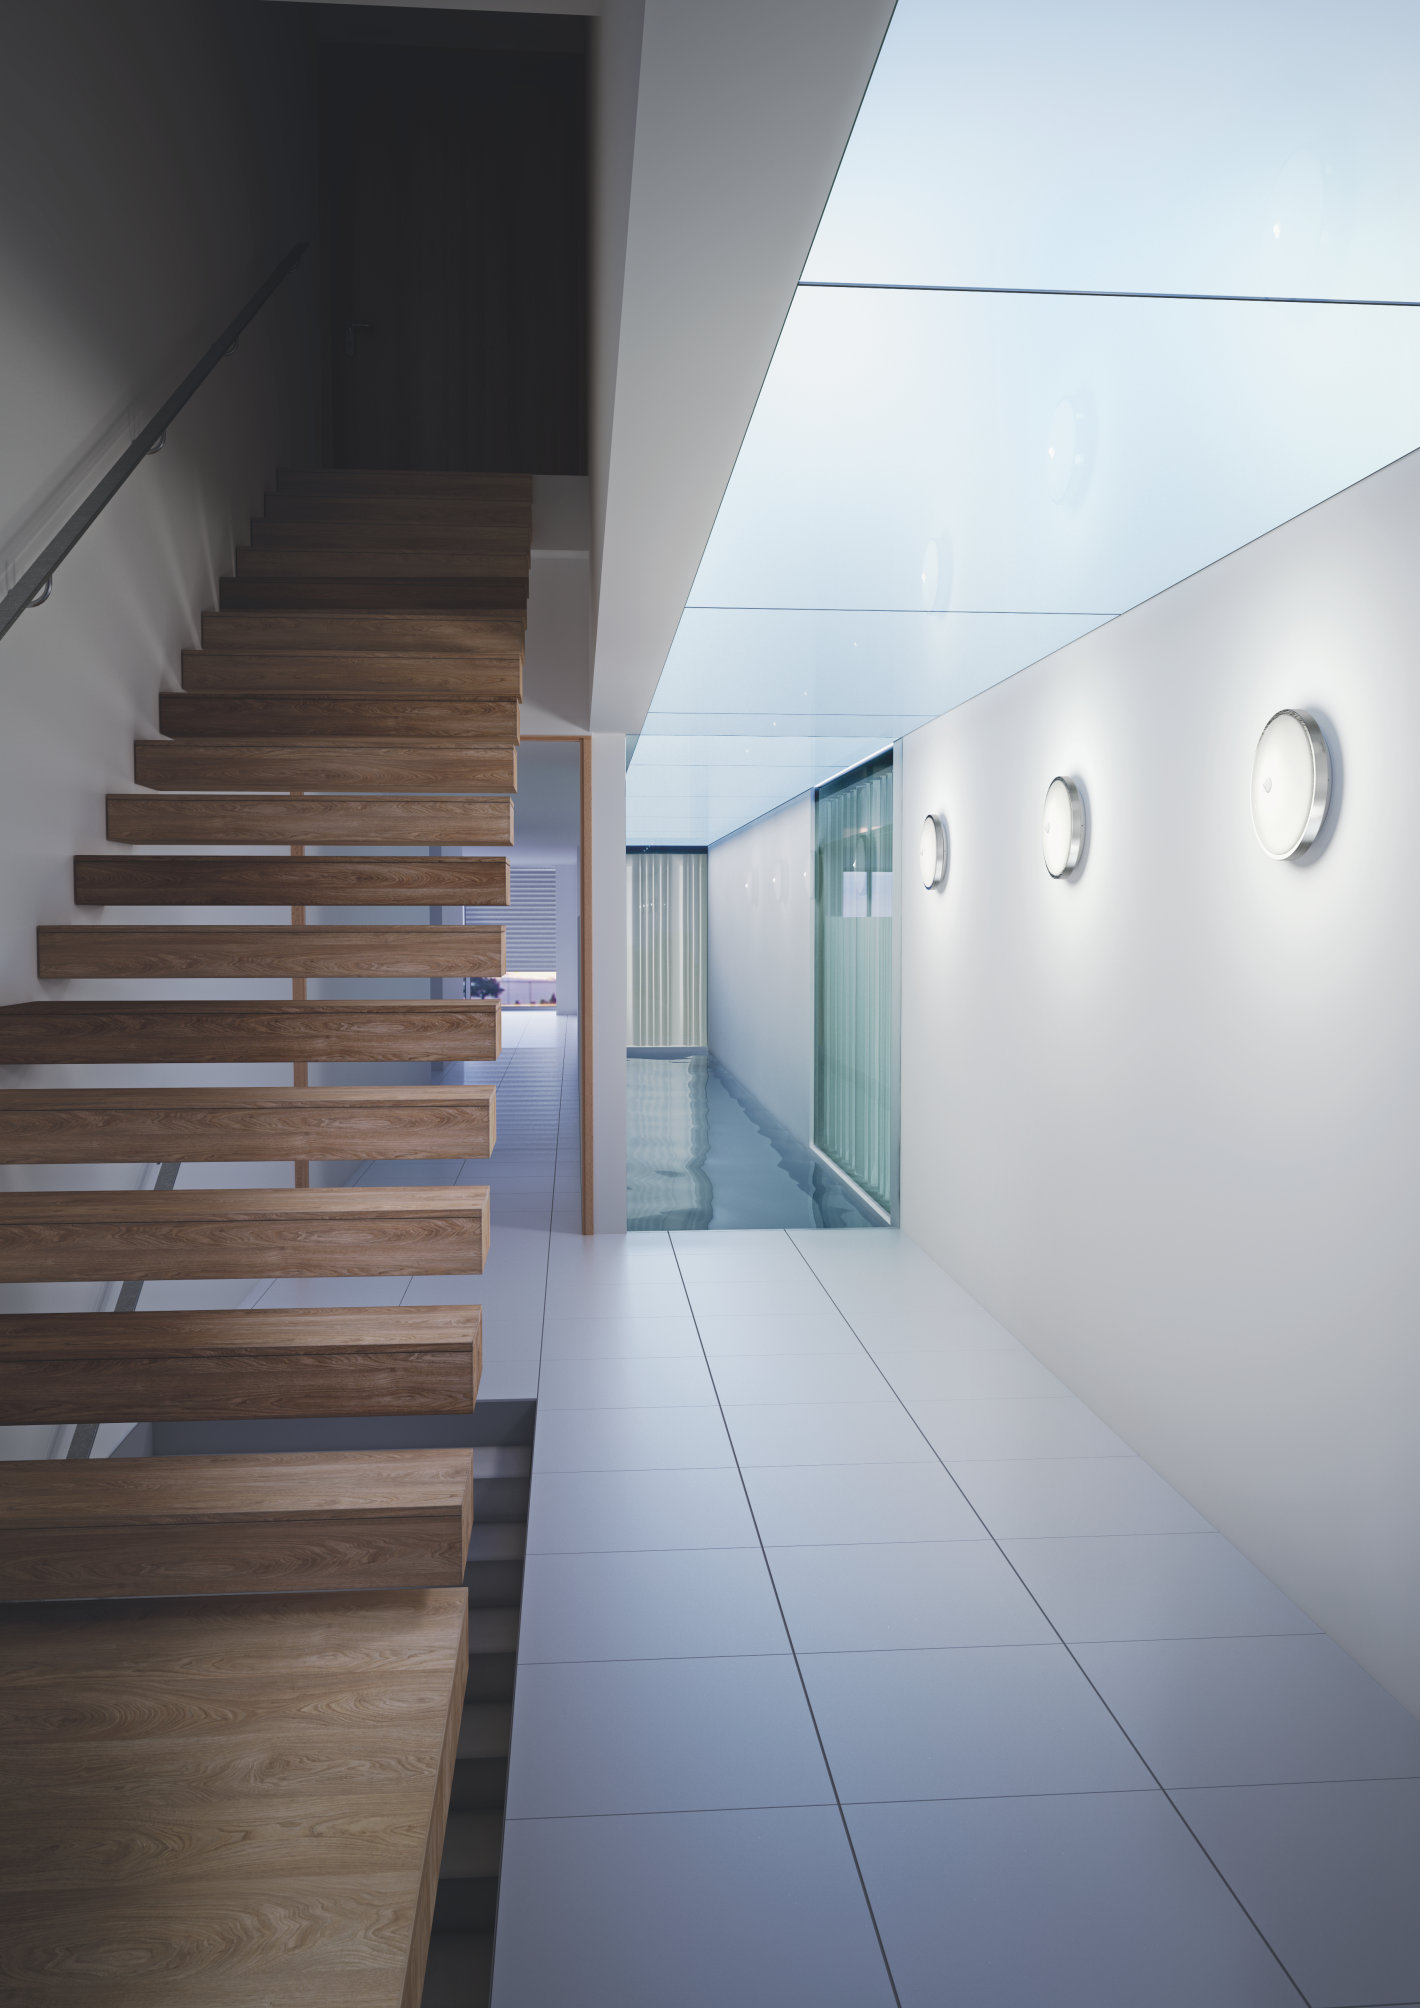 Led light for you light is osram for Luces interiores